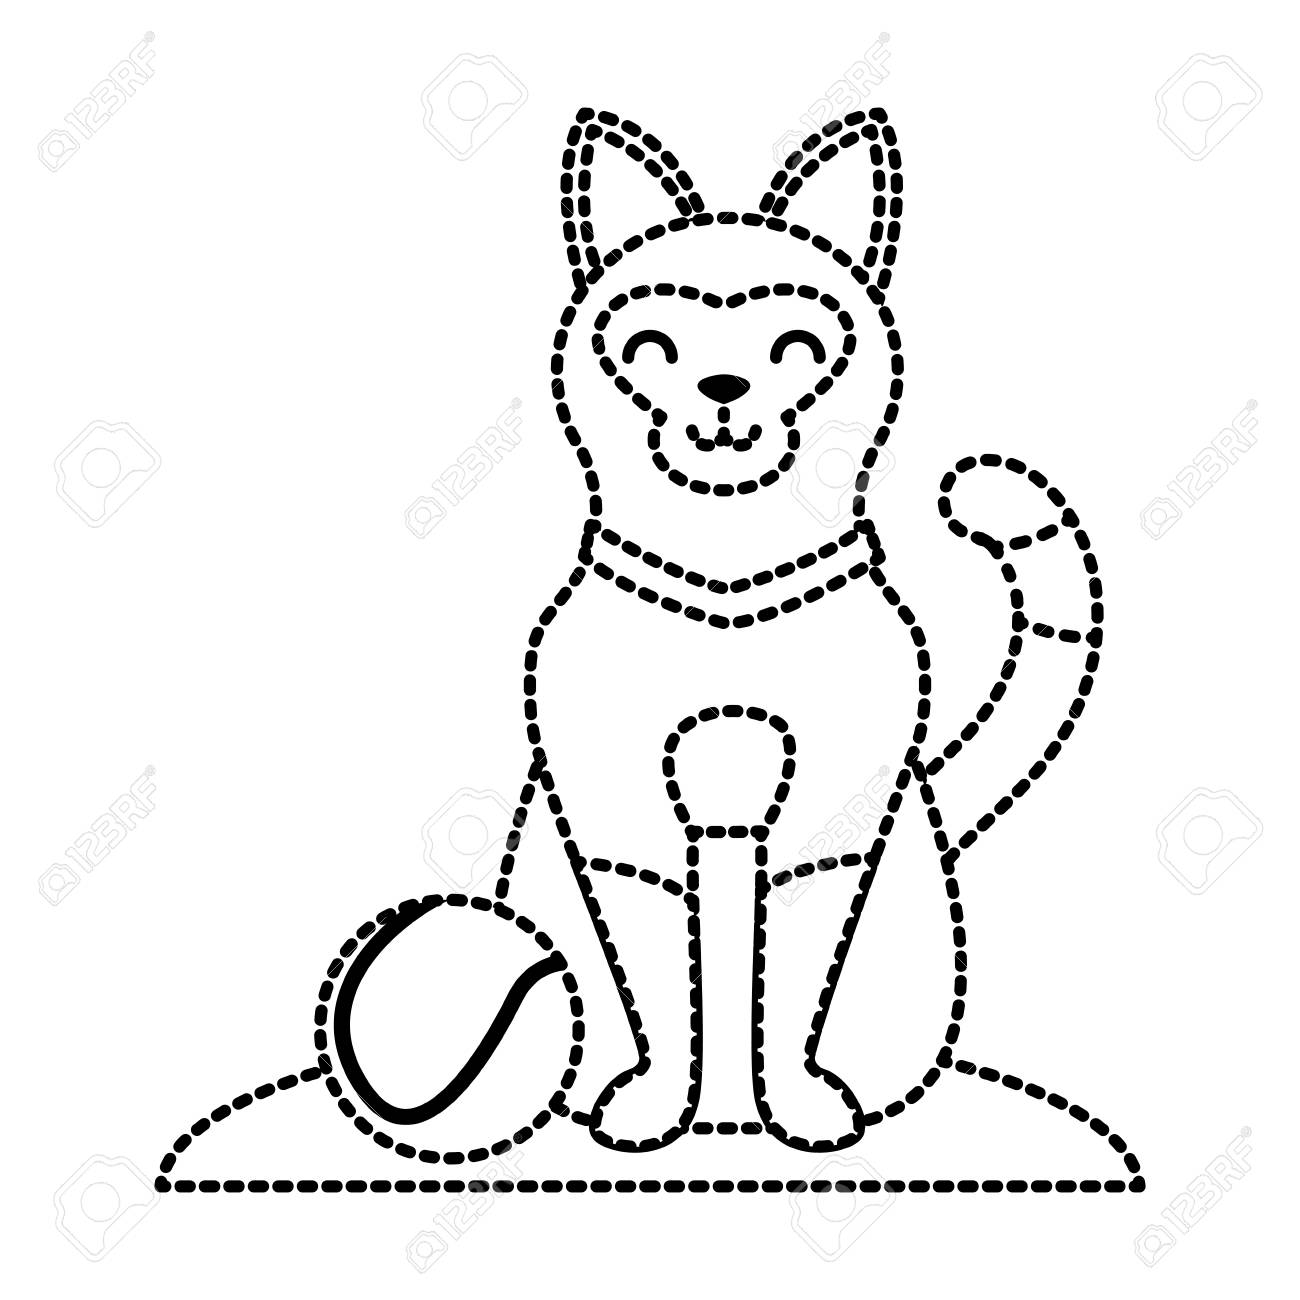 Dotted Line Drawing At Getdrawings